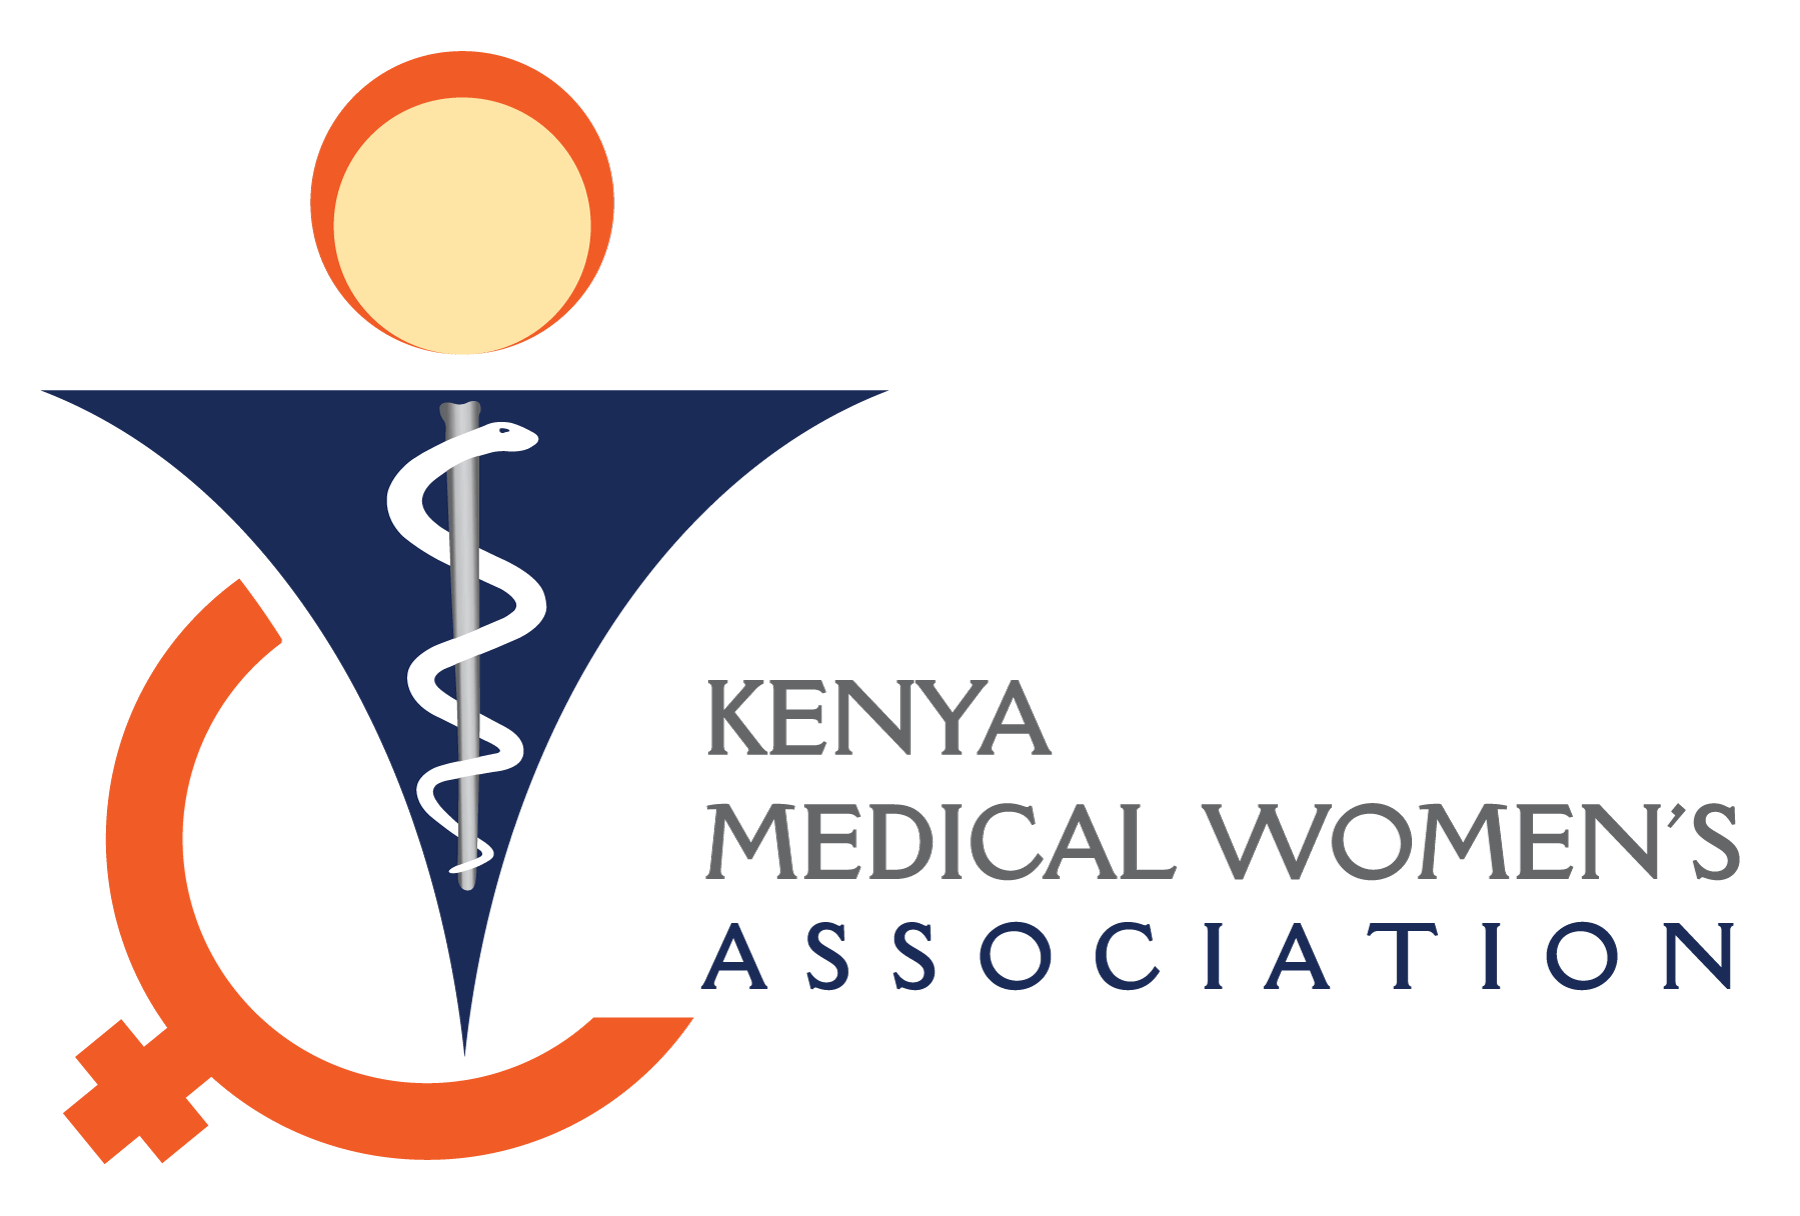 Crucial Aspects you should consider when selecting a Kenyan hospital